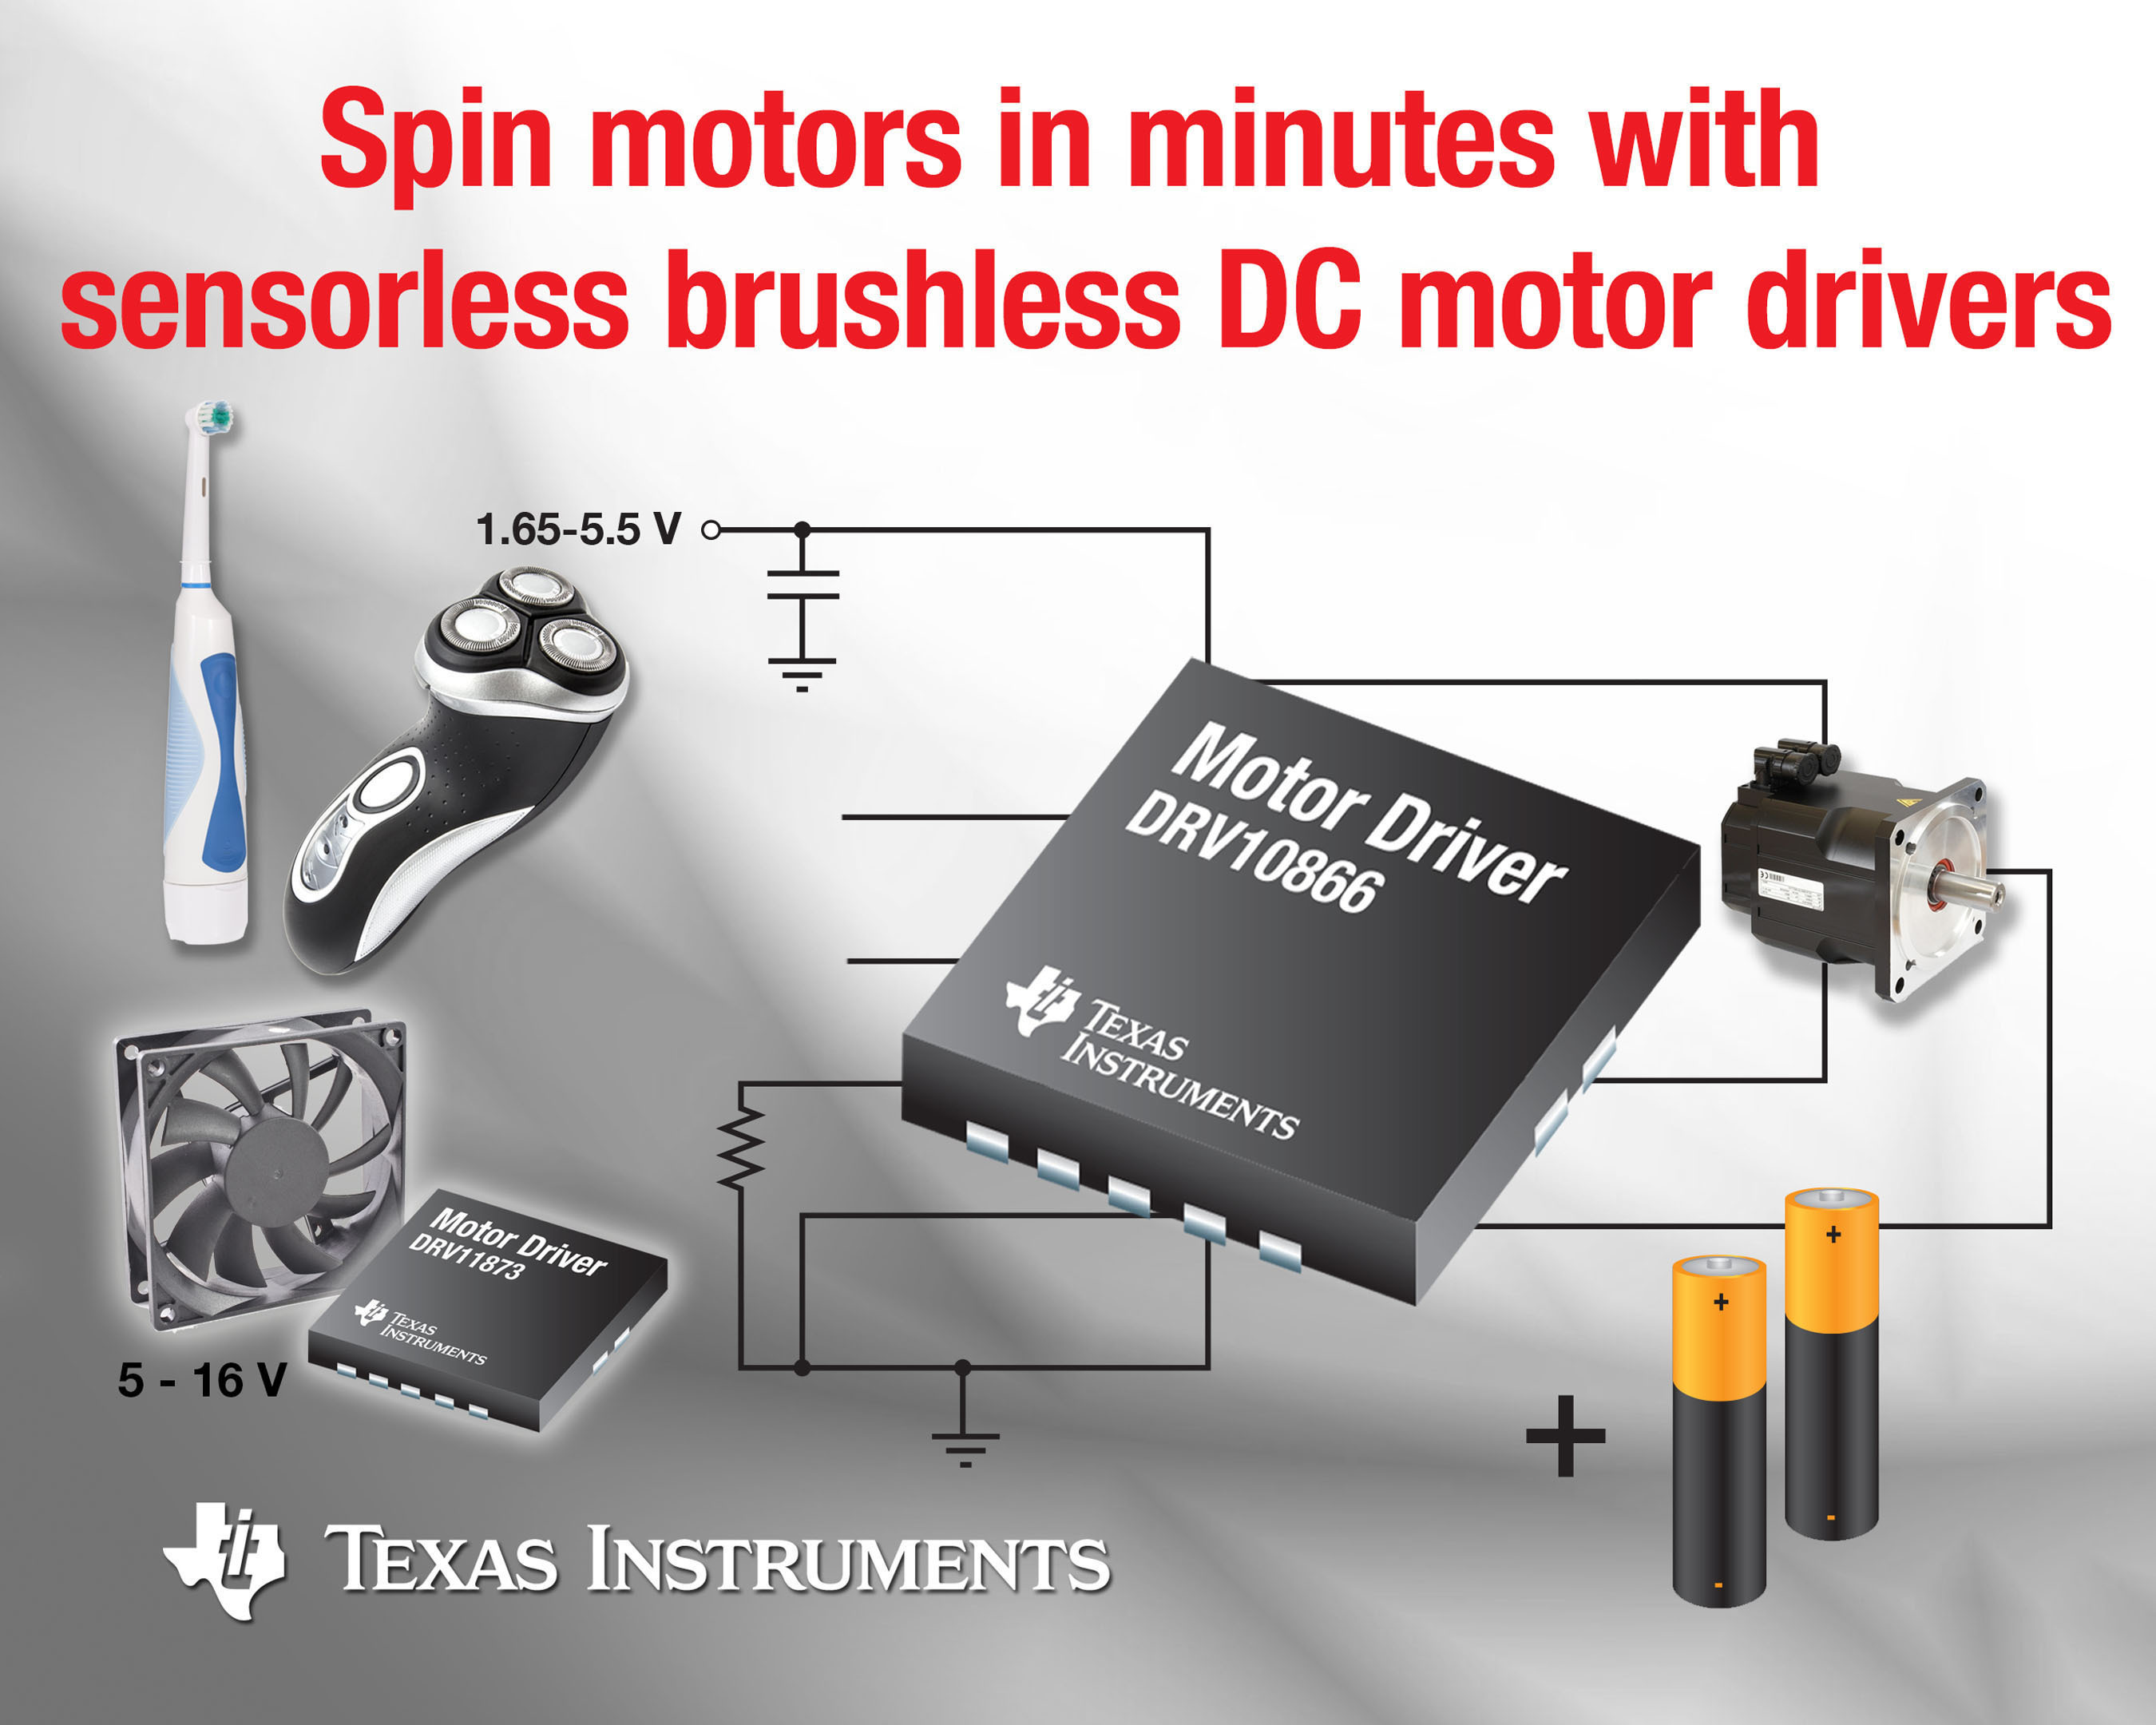 TI spins motors in minutes with sensorless, brushless DC motor drivers